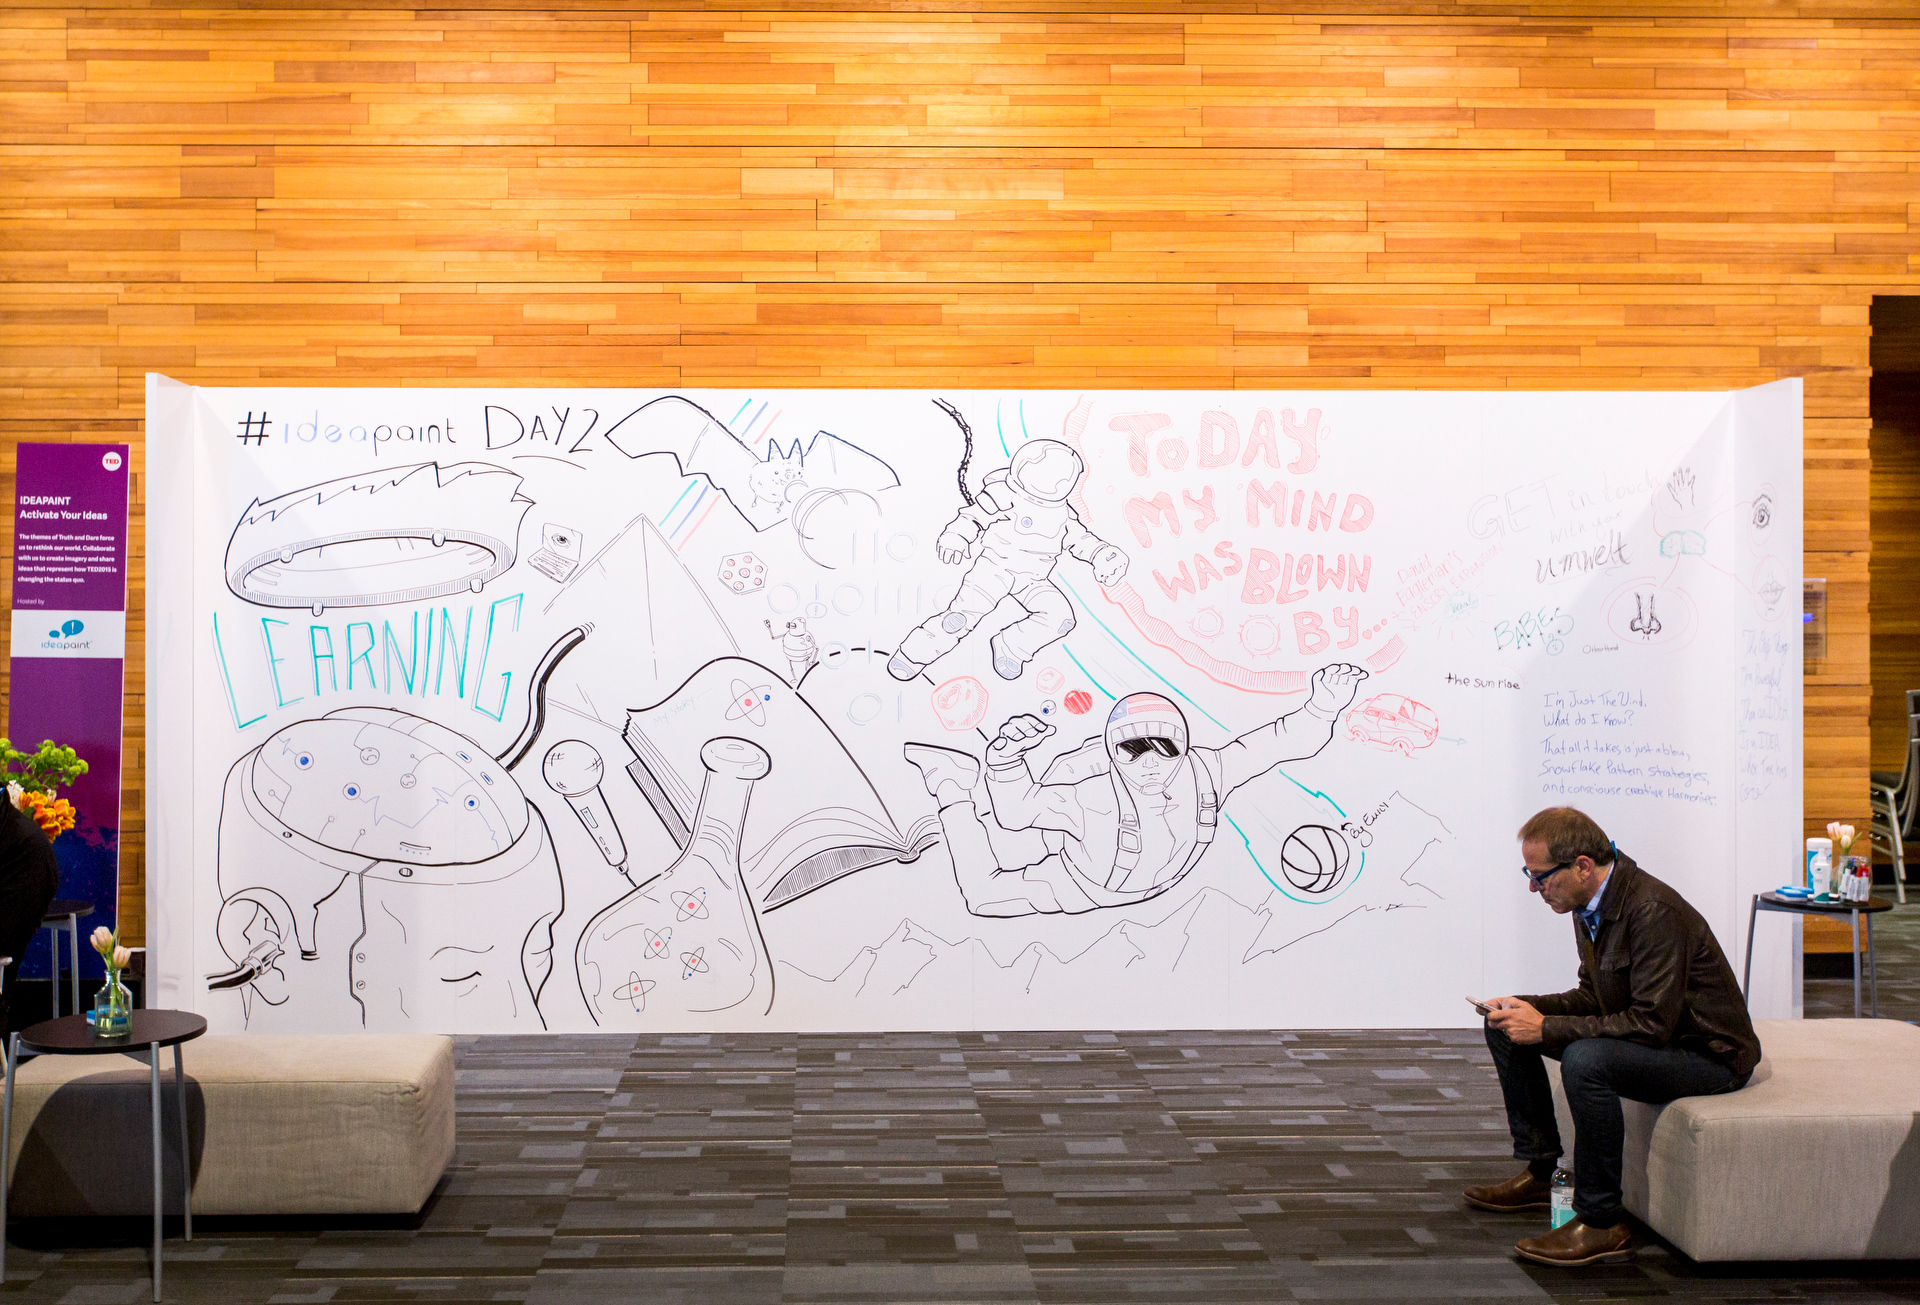 Over at the IdeaPaint wall, attendees are encouraged to draw on the wall and add to Derek Cascio's designs. Photo: Ryan Lash/TED